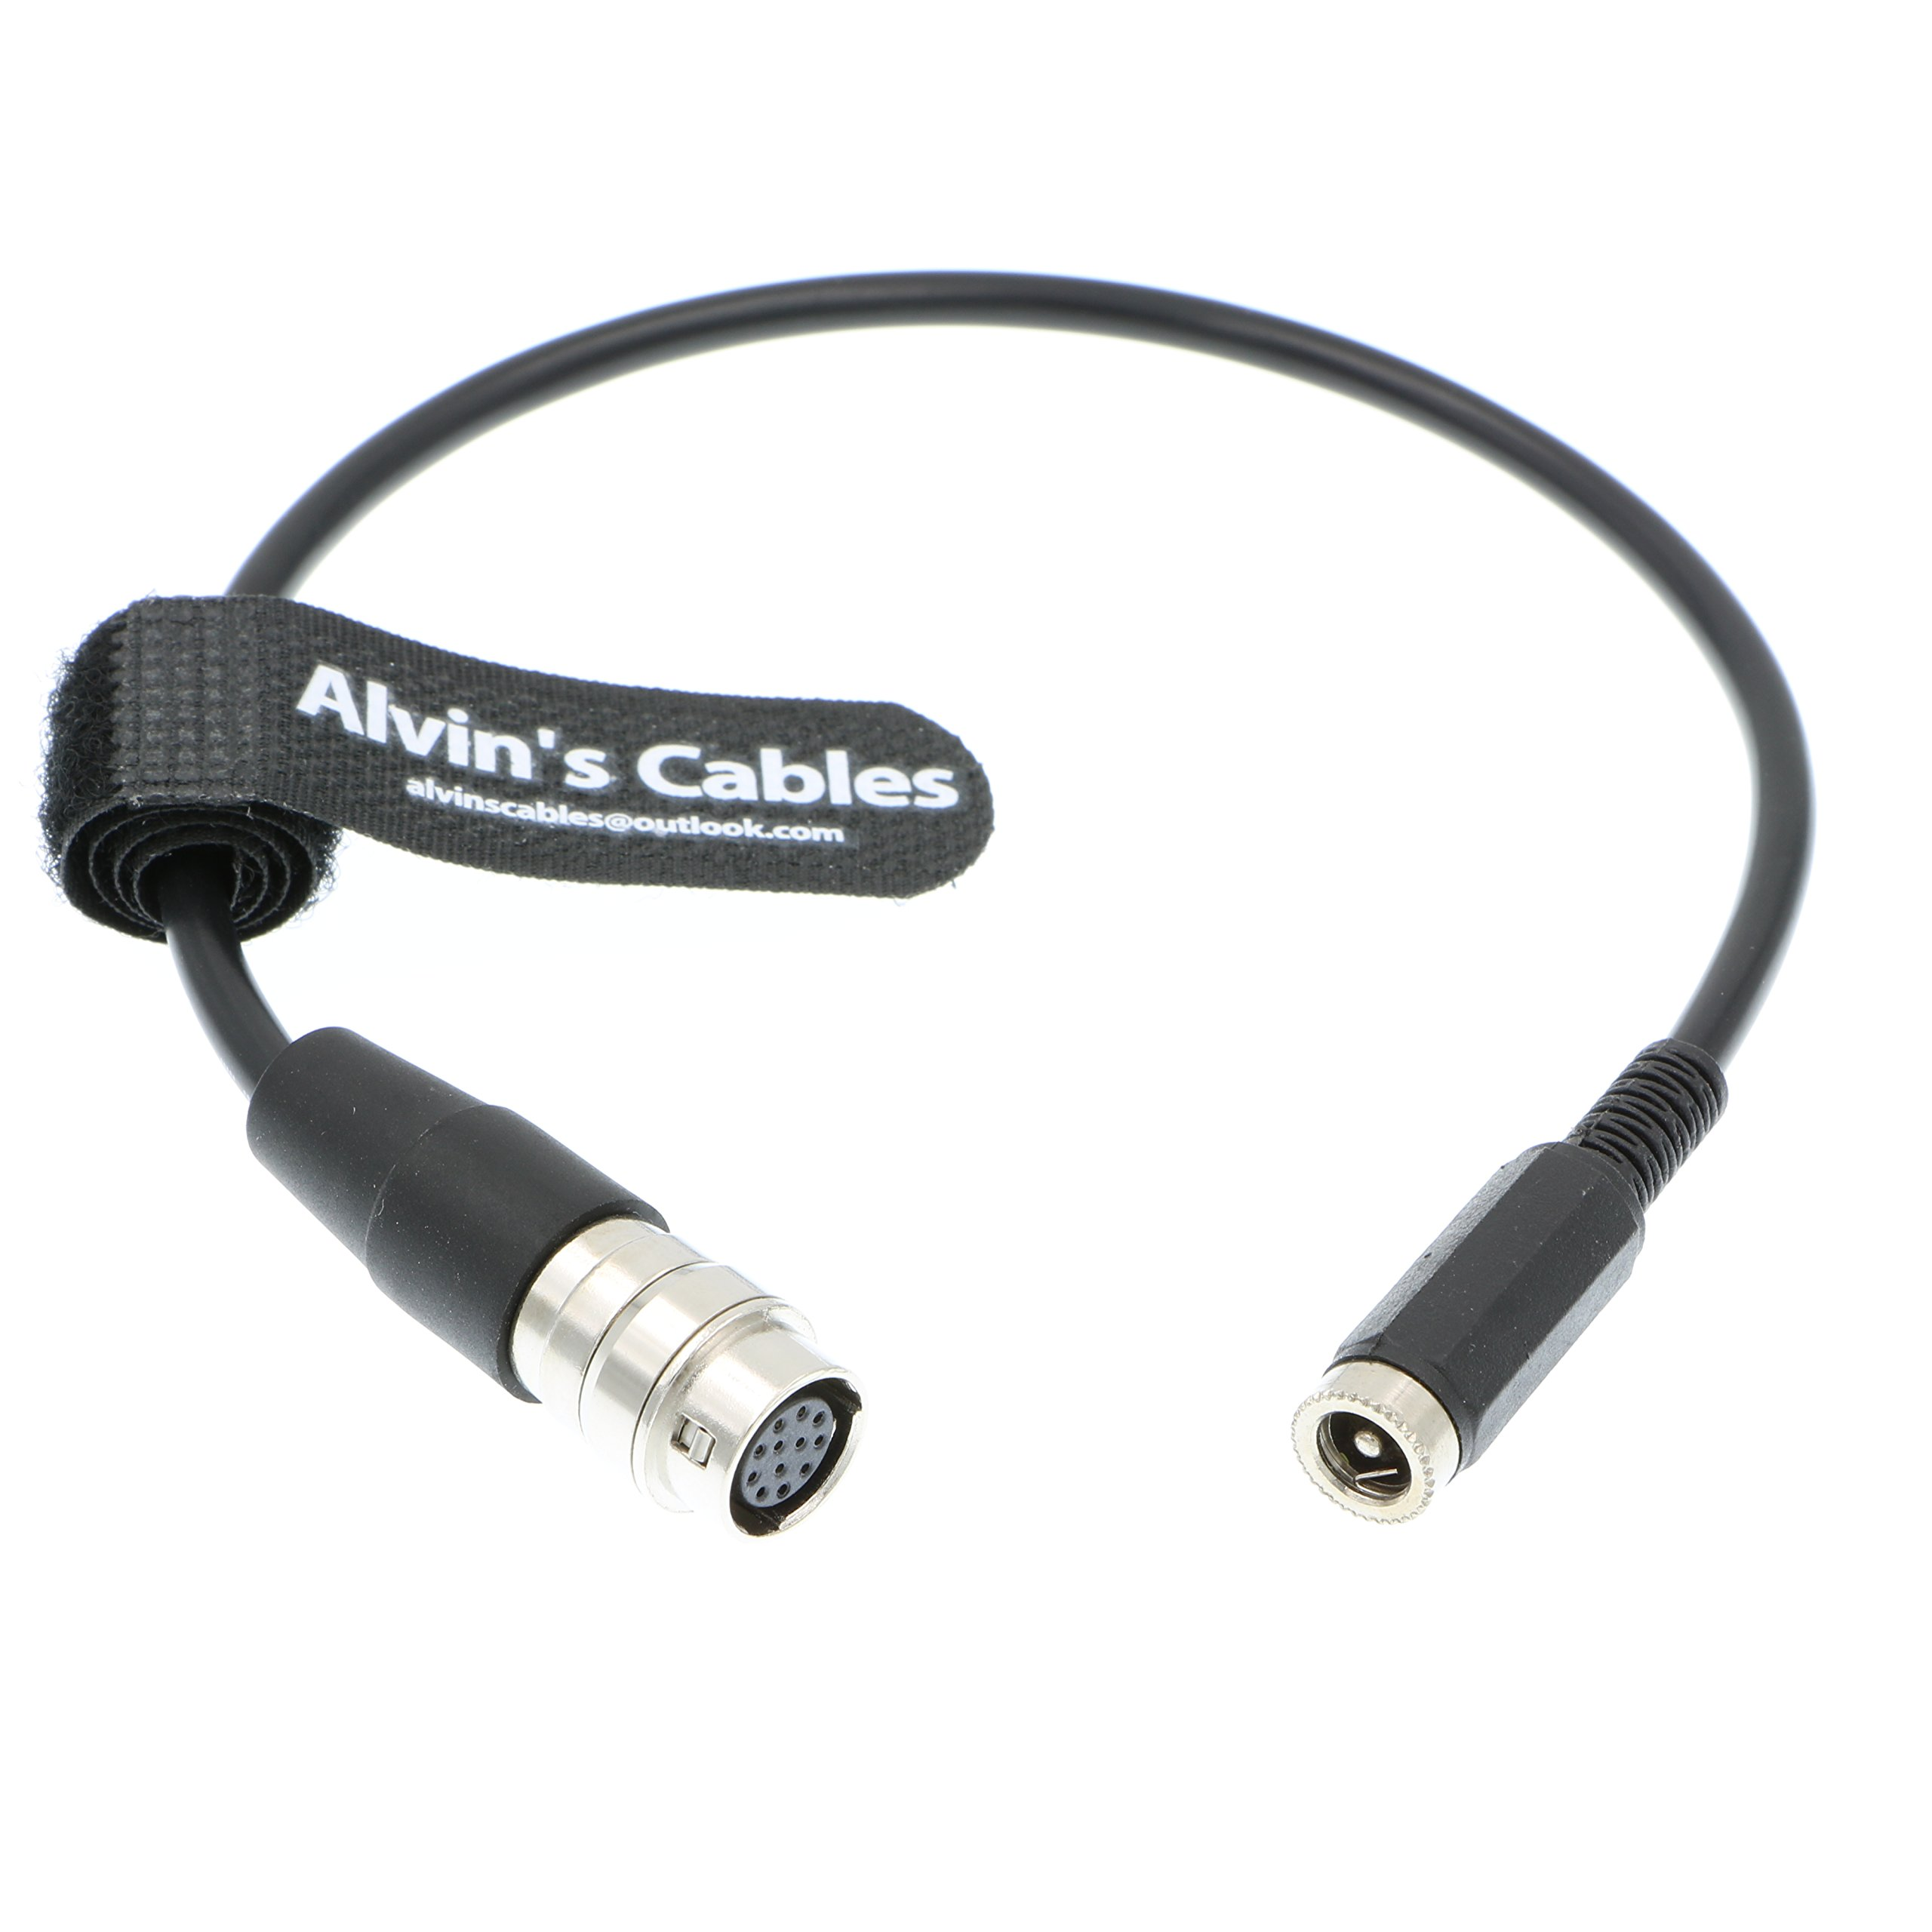 12 Pin Hirose to DC 12v Female Cable GH4 Power B4 2/3''Fujinon Nikon Canon Lens by Alvin's Cables